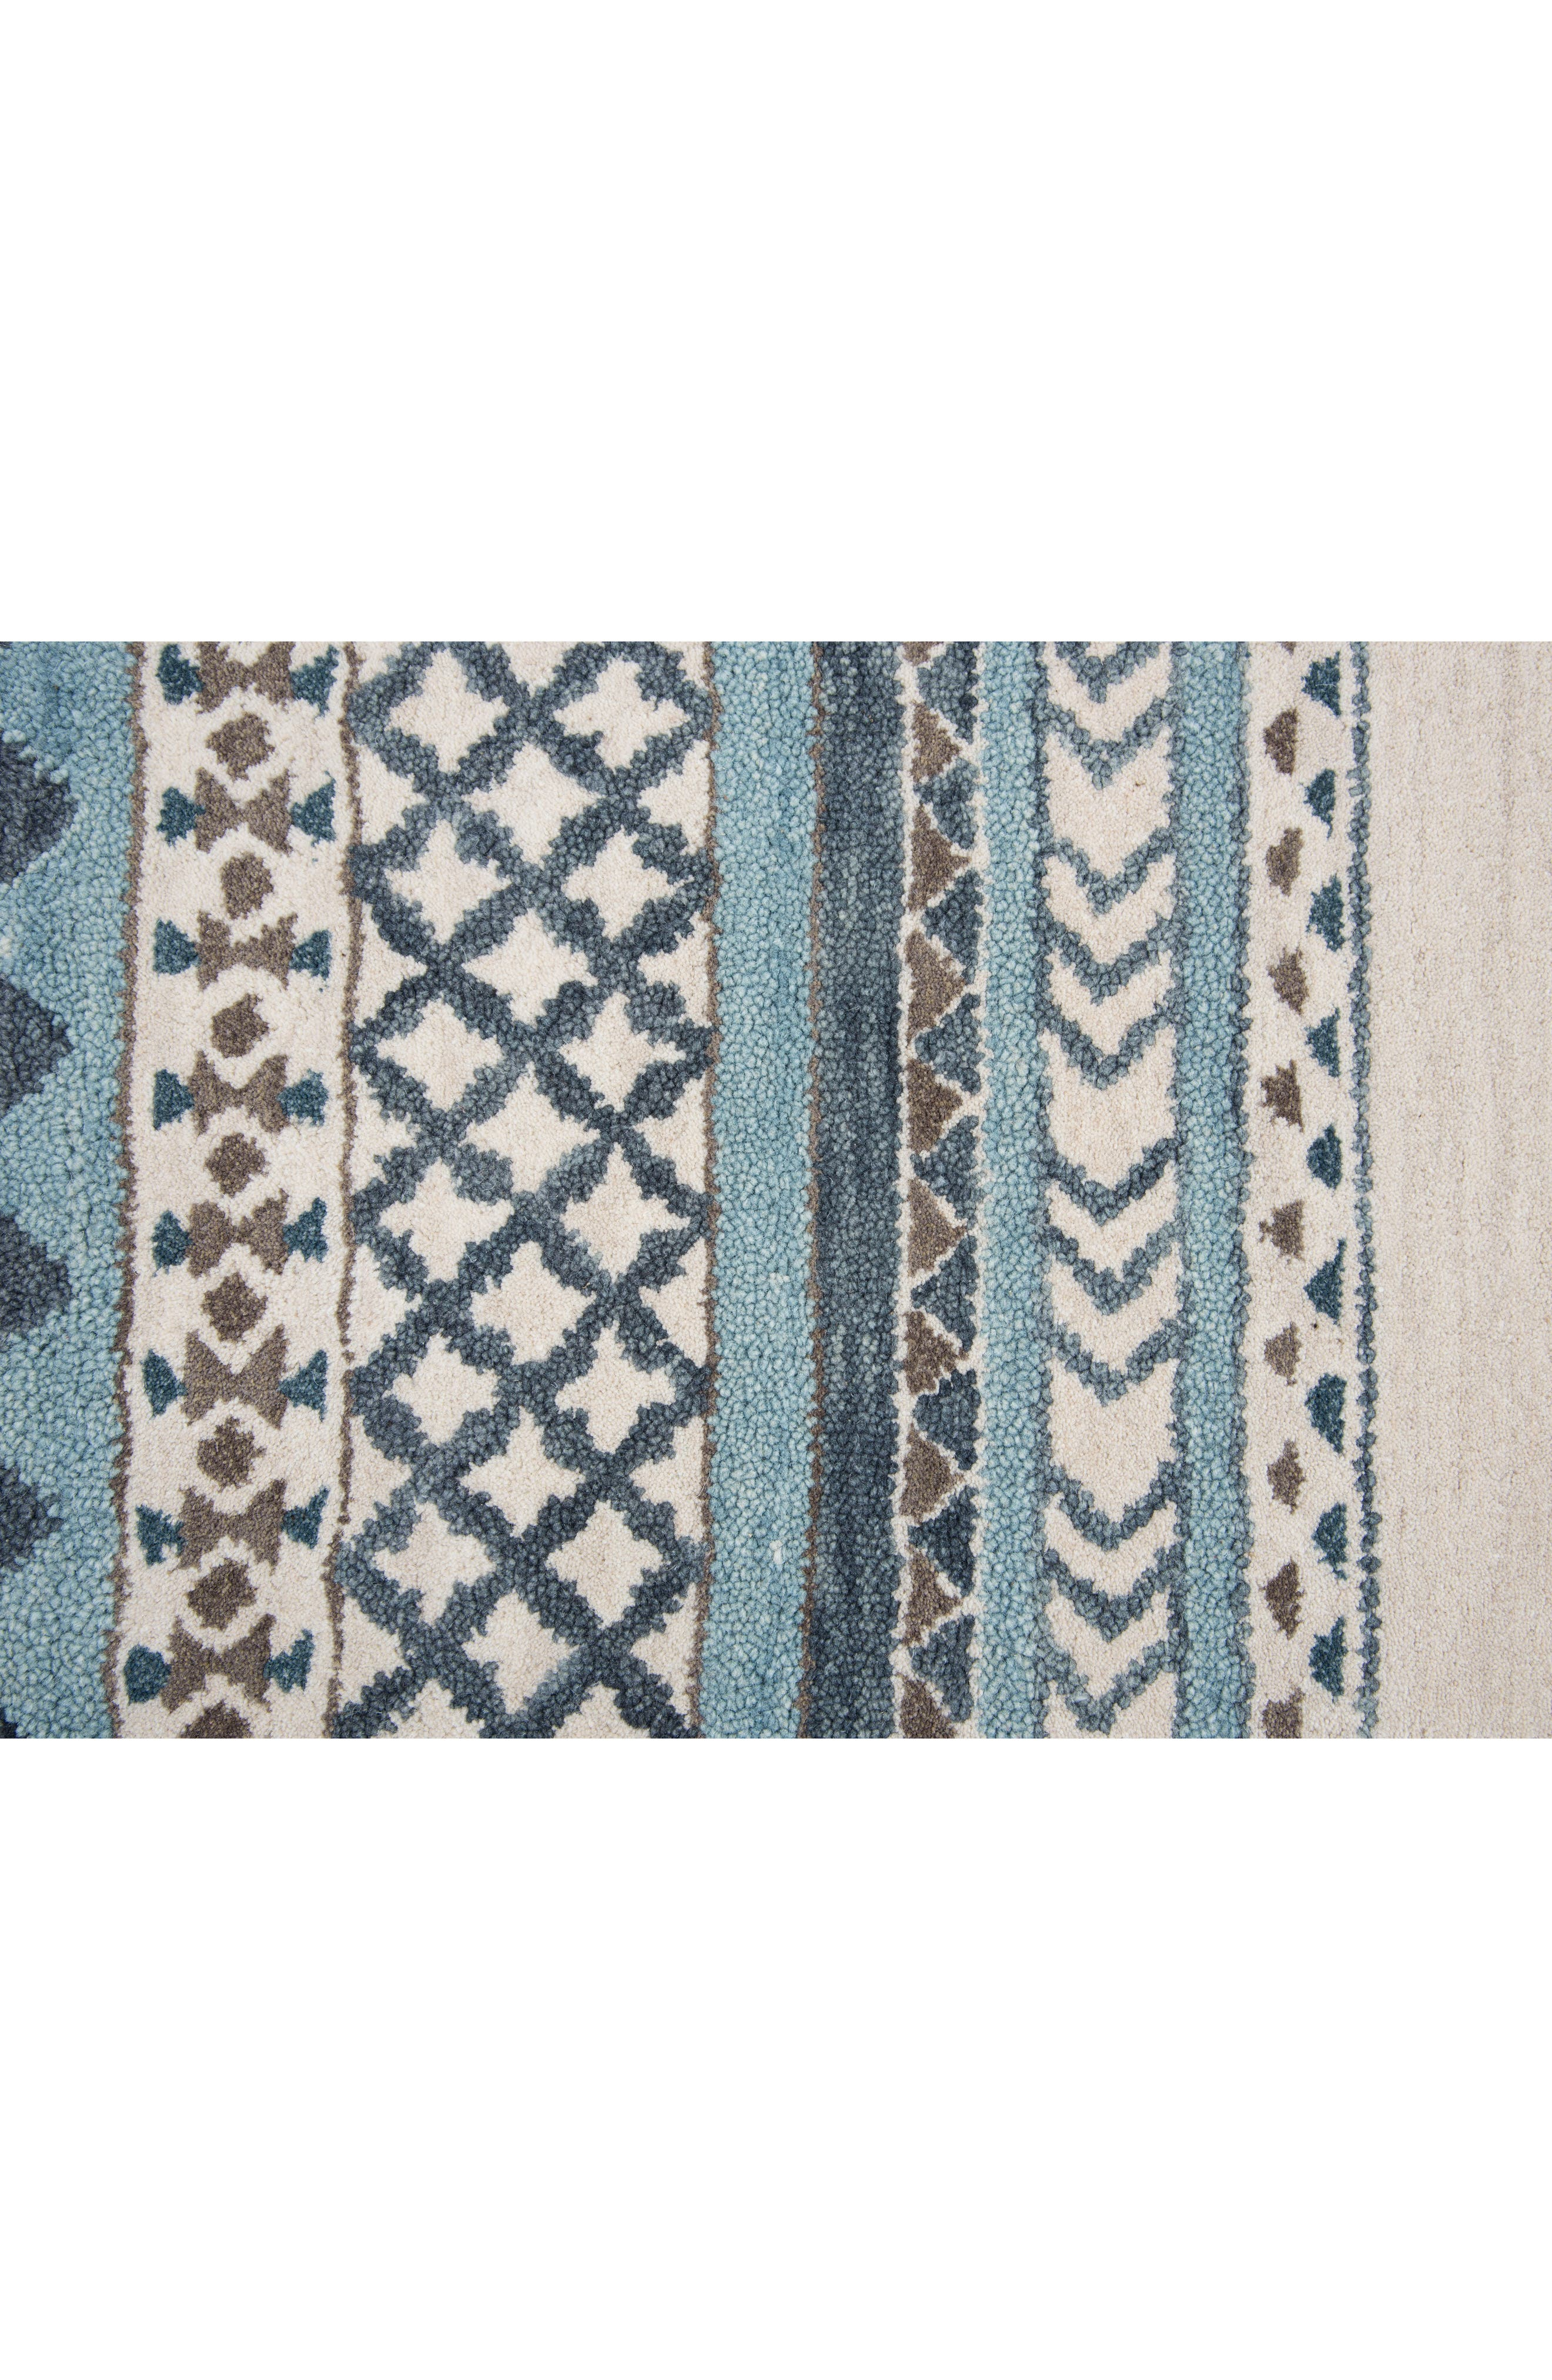 Hand Tufted Wool Blanket Rug,                             Alternate thumbnail 4, color,                             400